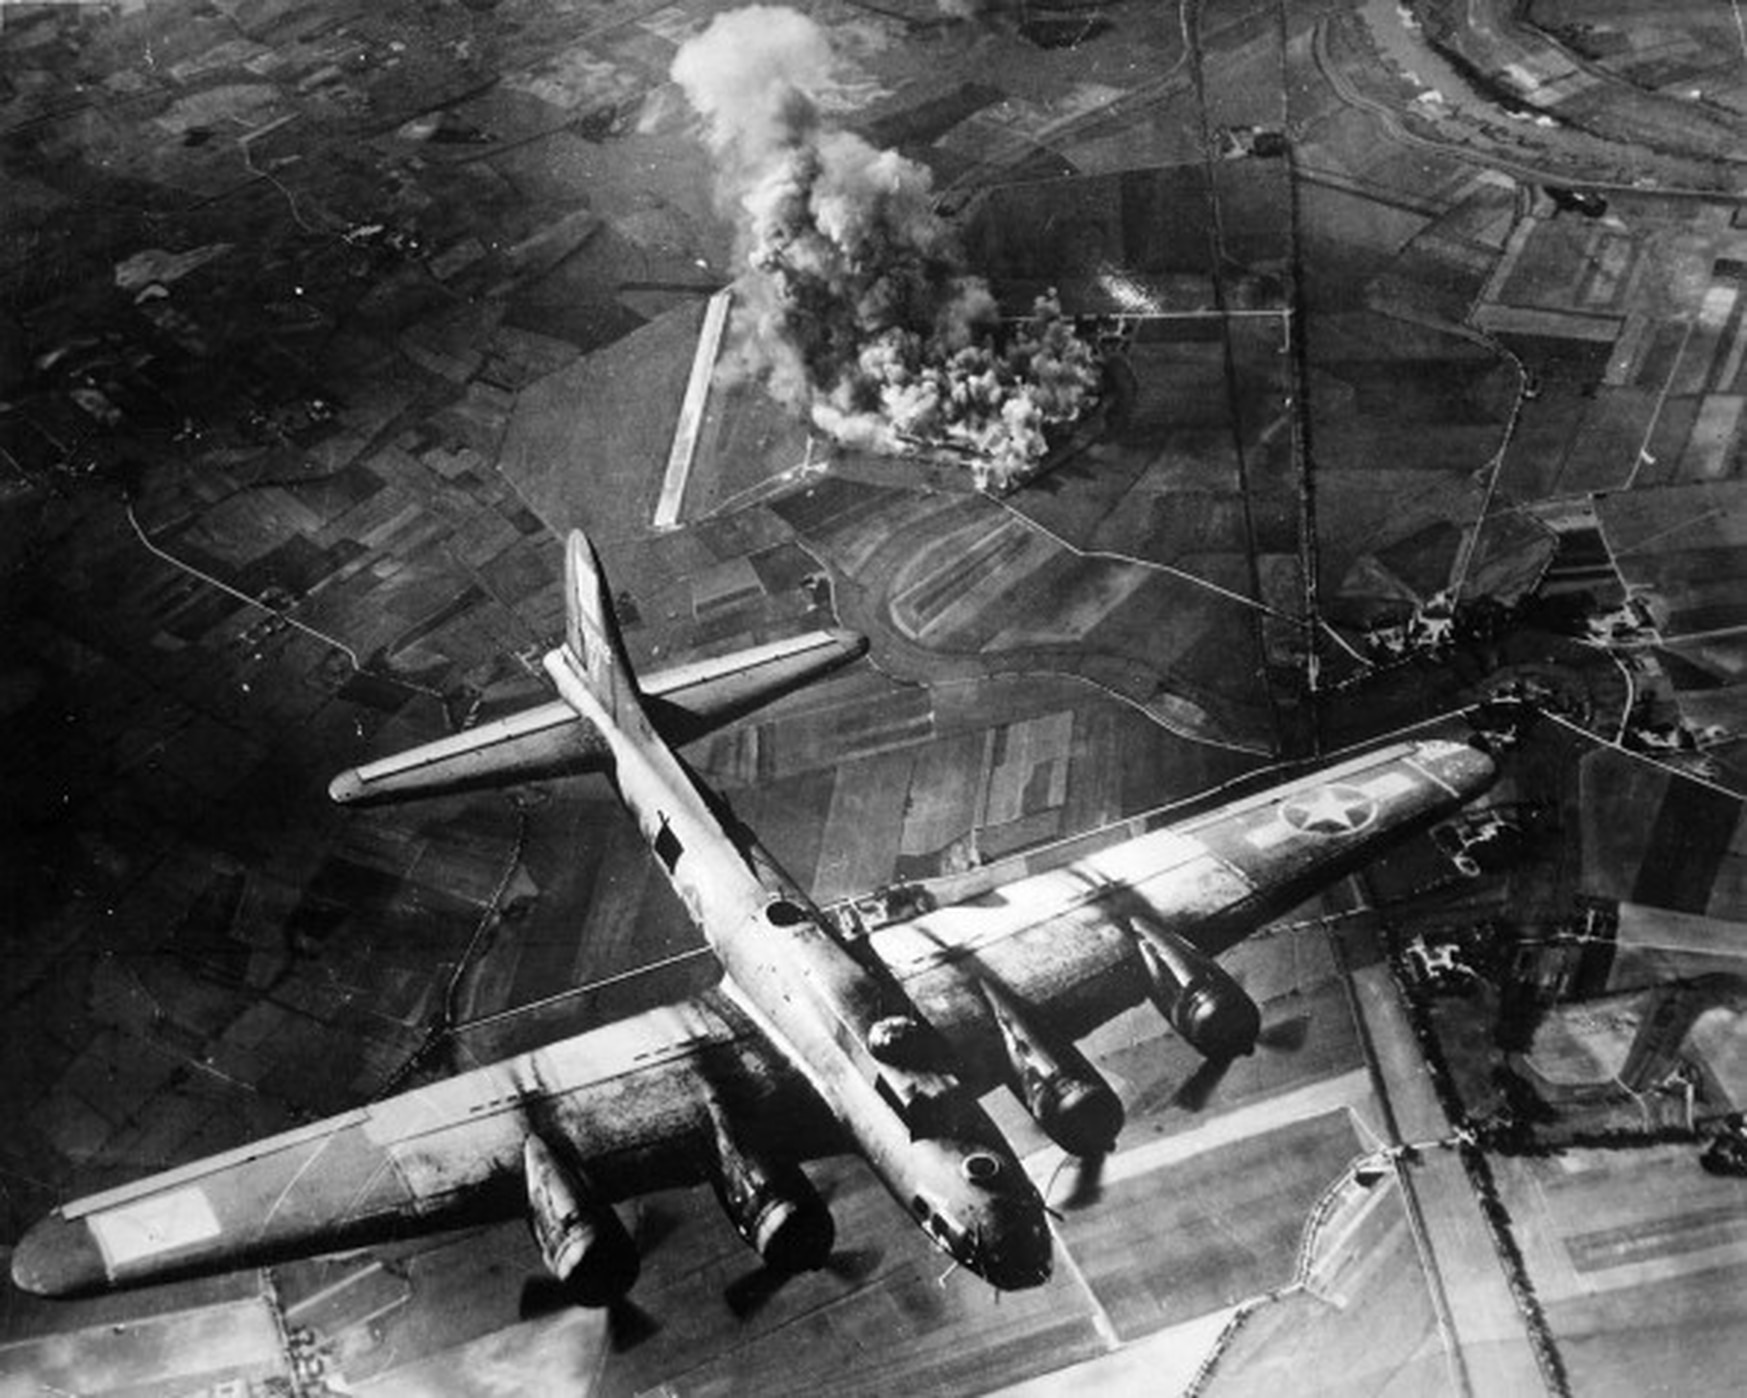 Bombers attack ball bearing factories at Schweinfurt, Germany. (U.S. Air Force)